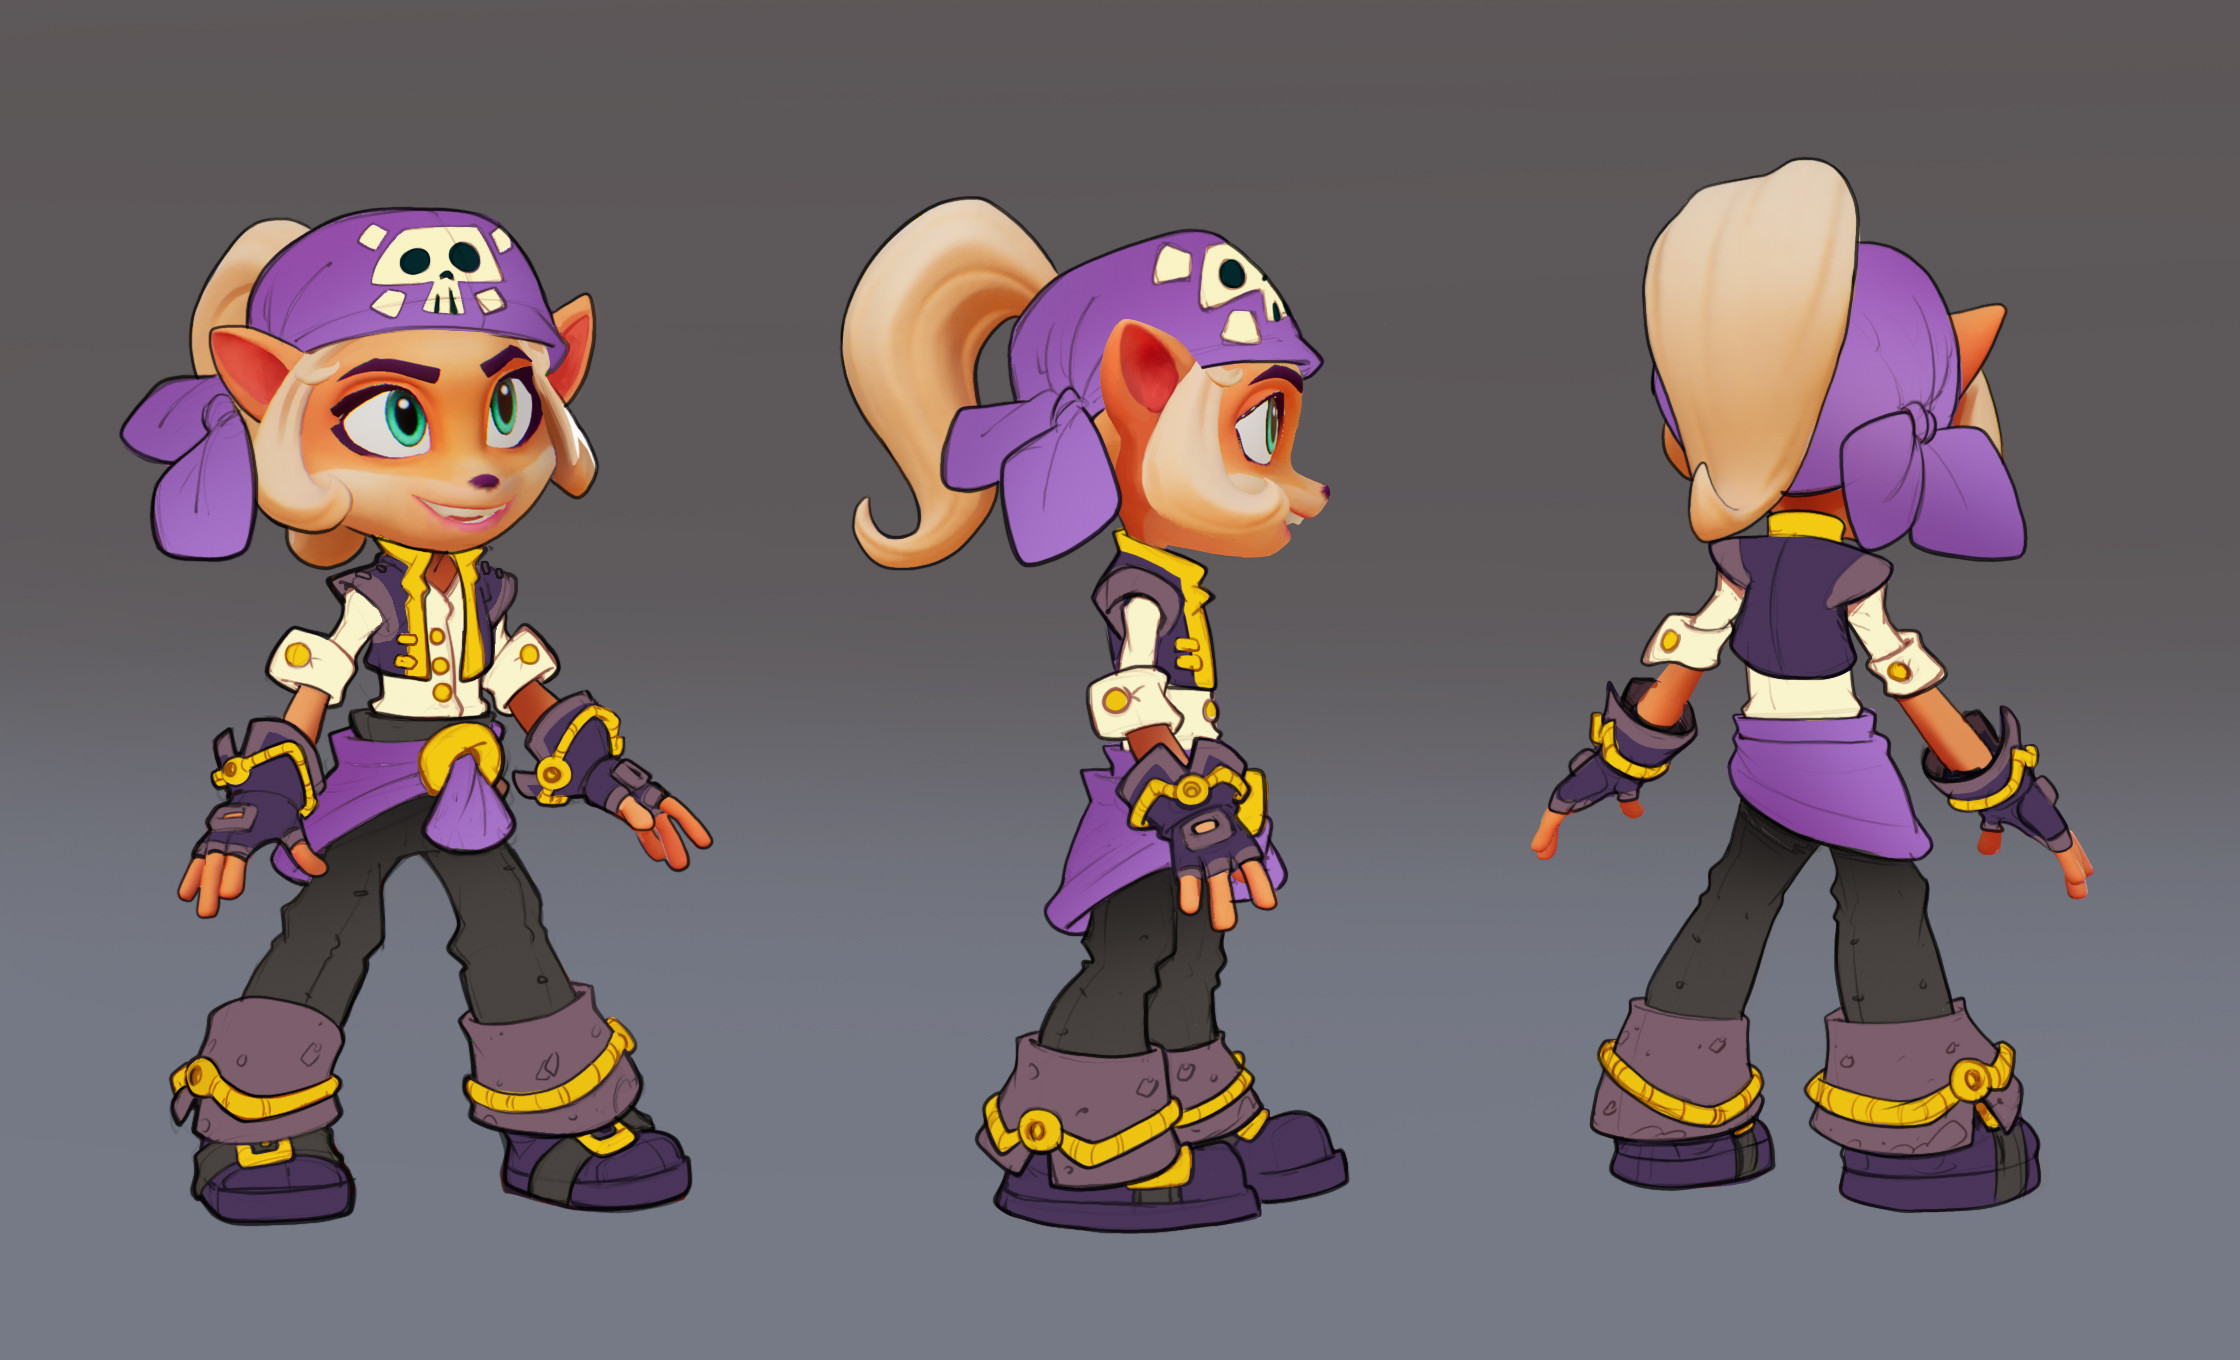 Went back with origin purple and gold colors for final design. Minimal rendering requested due to time constraints.